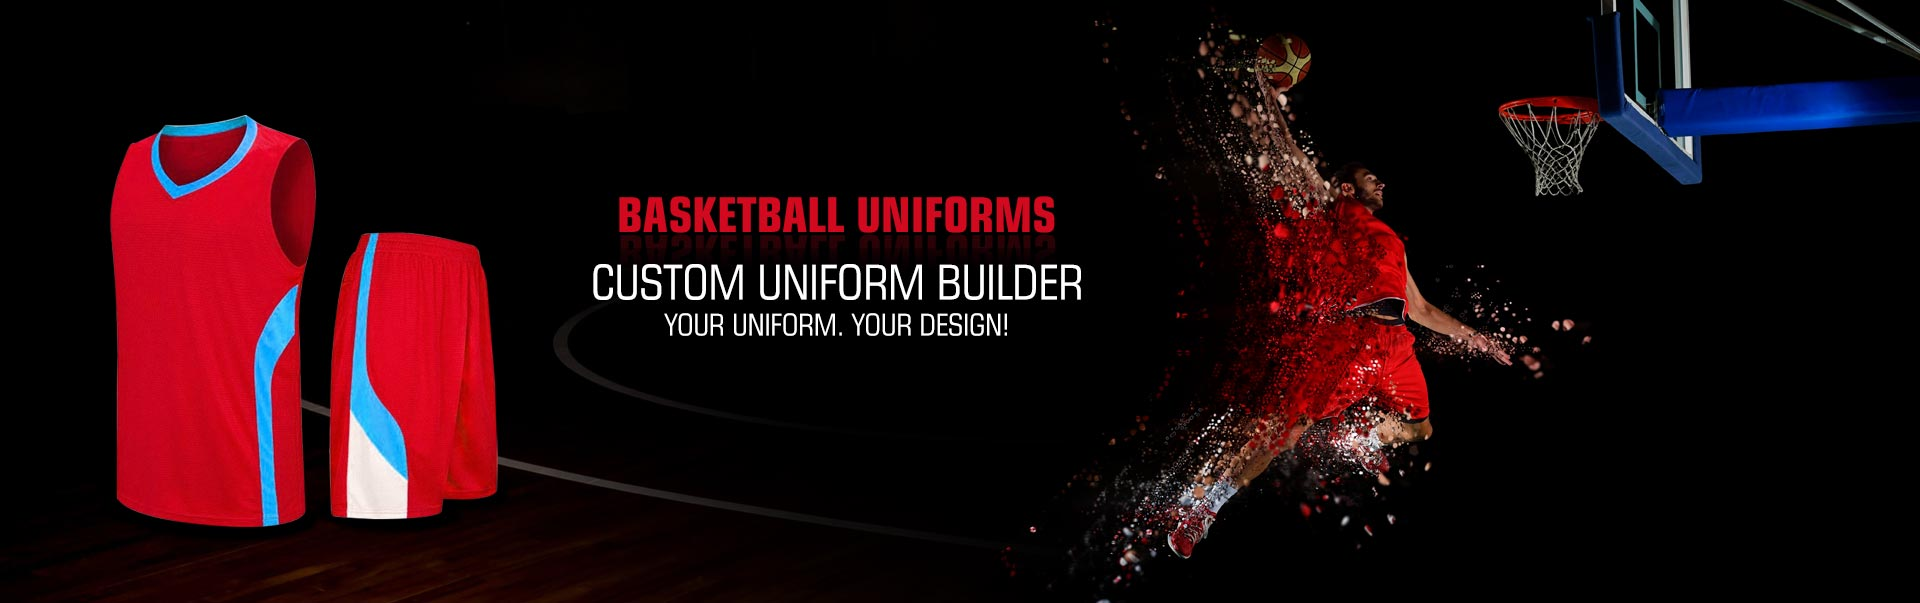 Basketball Uniforms Wholesaler, Suppliers in Toulon